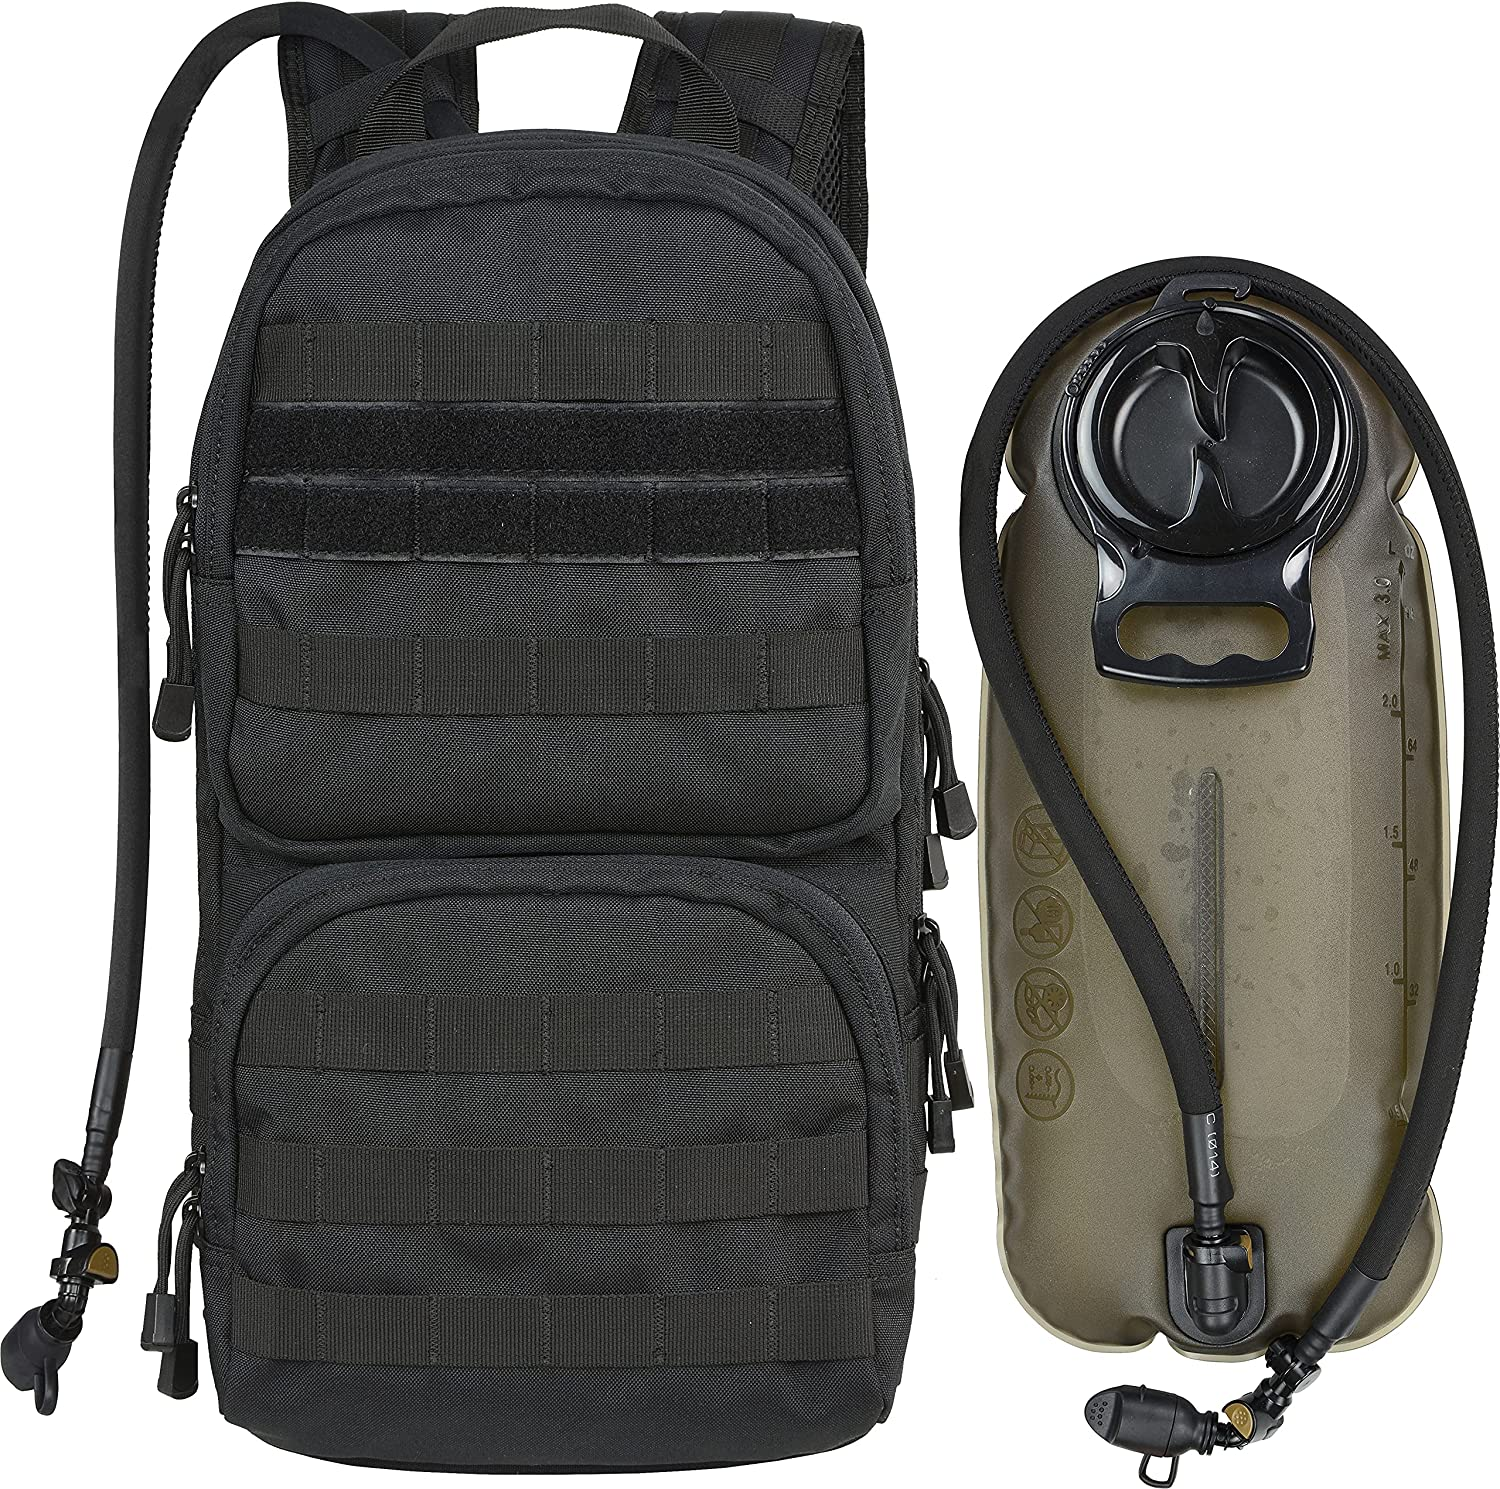 MARCHWAY Tactical Molle Hydration Finally popular brand Pack with 3L Water TPU Bladder Max 76% OFF